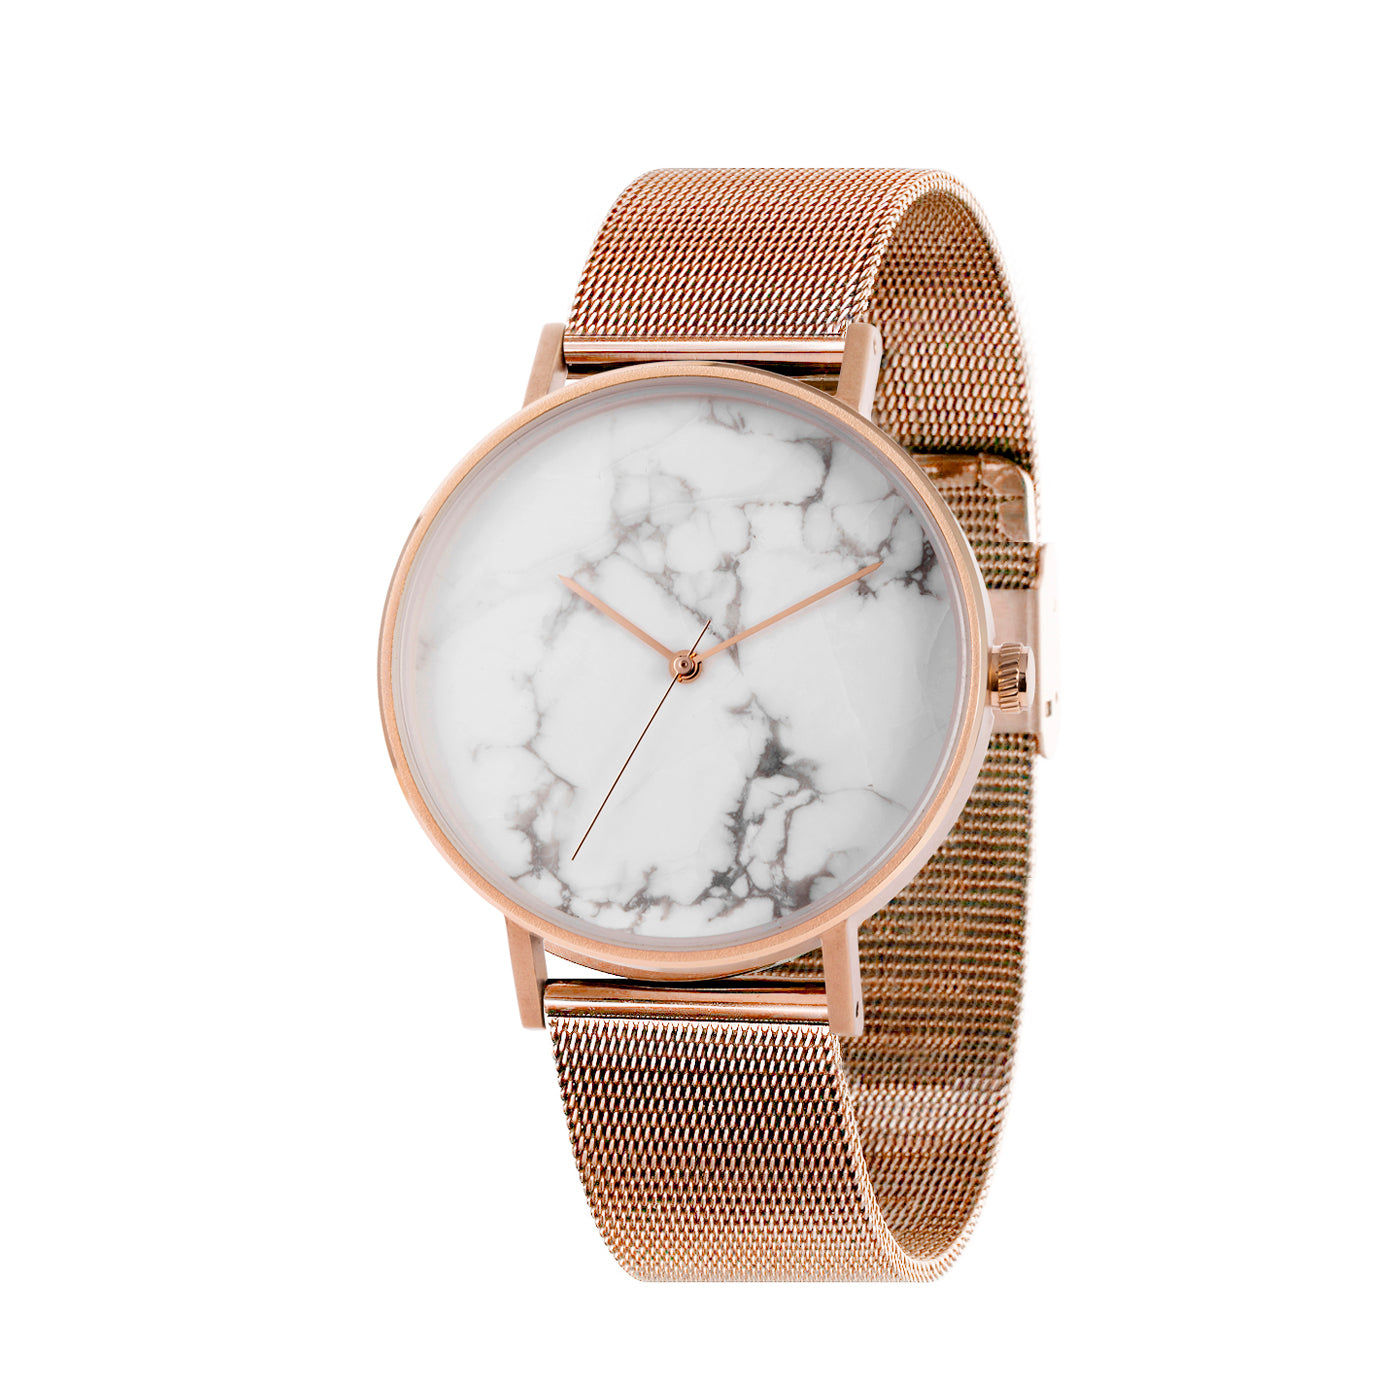 THE STONE -  WHITE MARBLE DIAL / ROSE GOLD MESH BAND WATCH